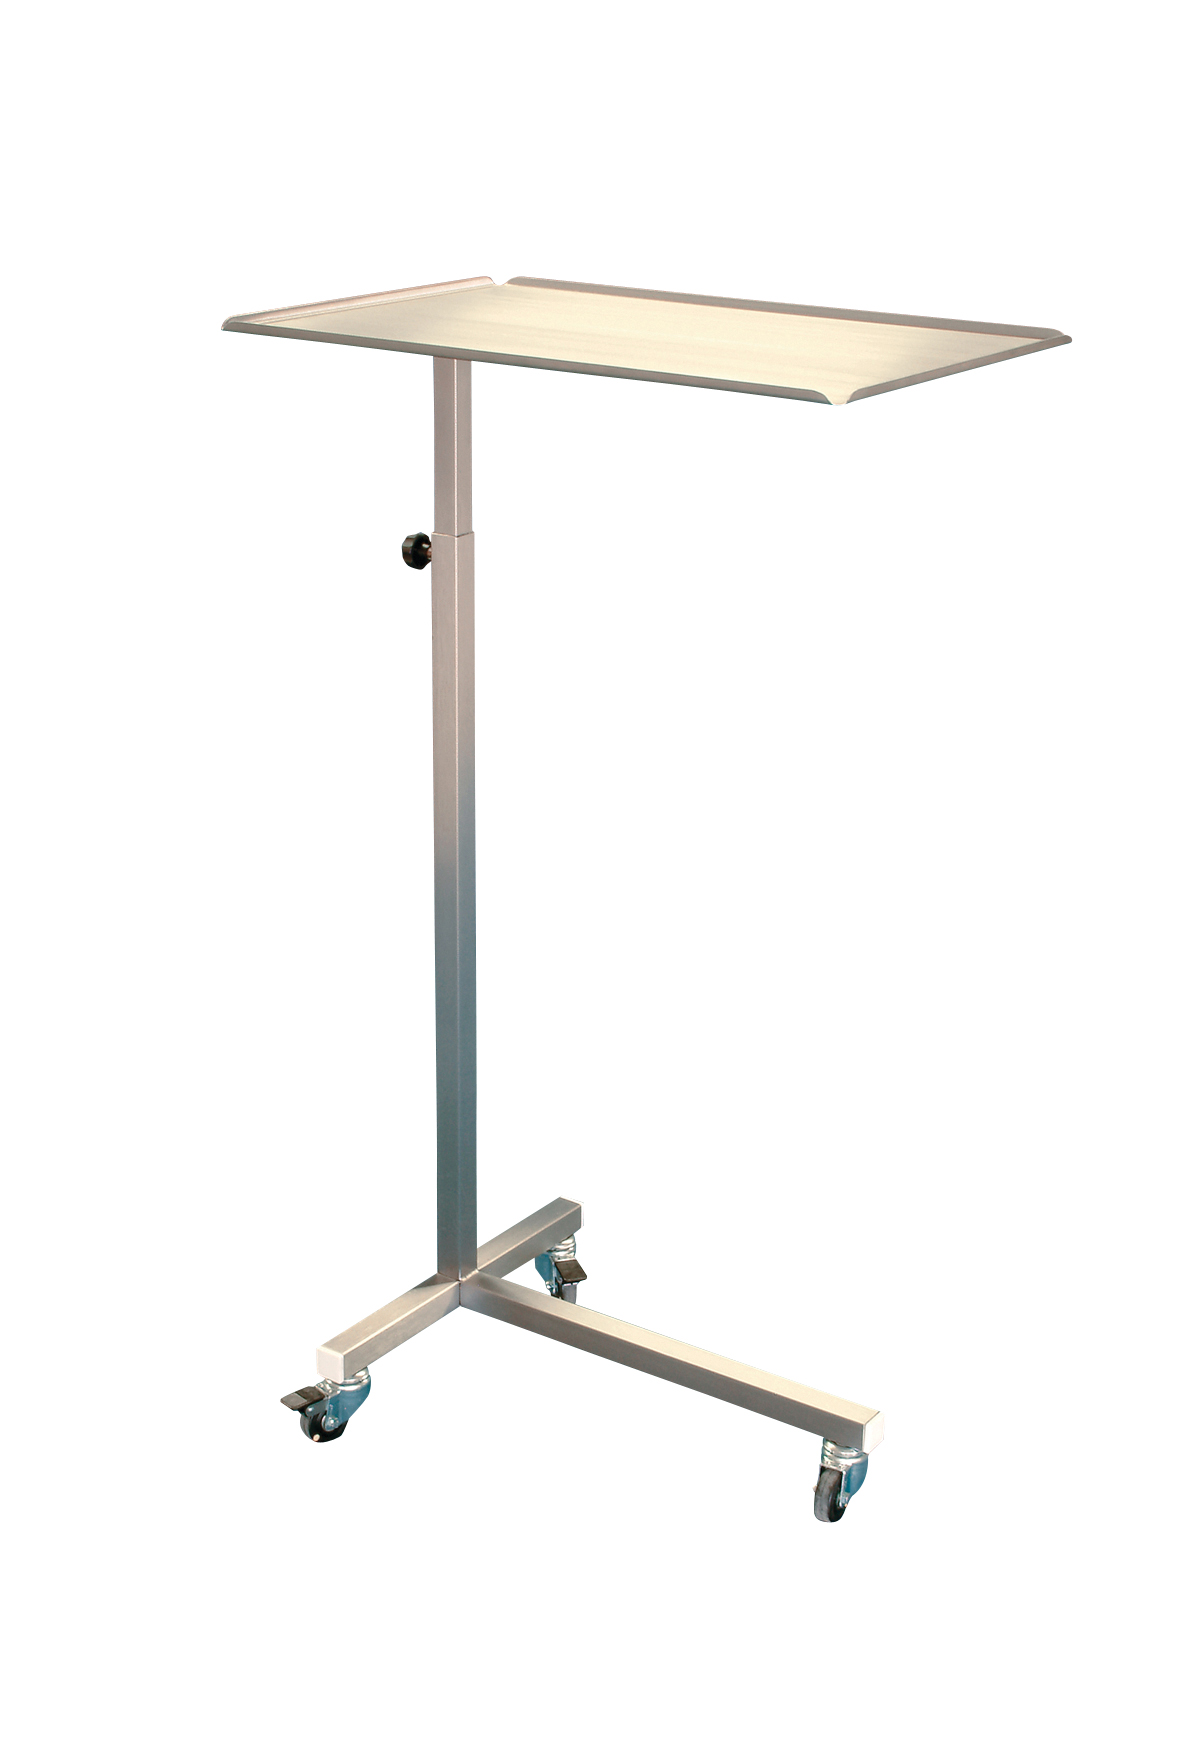 Mobile instrument table, 60 x 40 cm, height: 90-135 cm